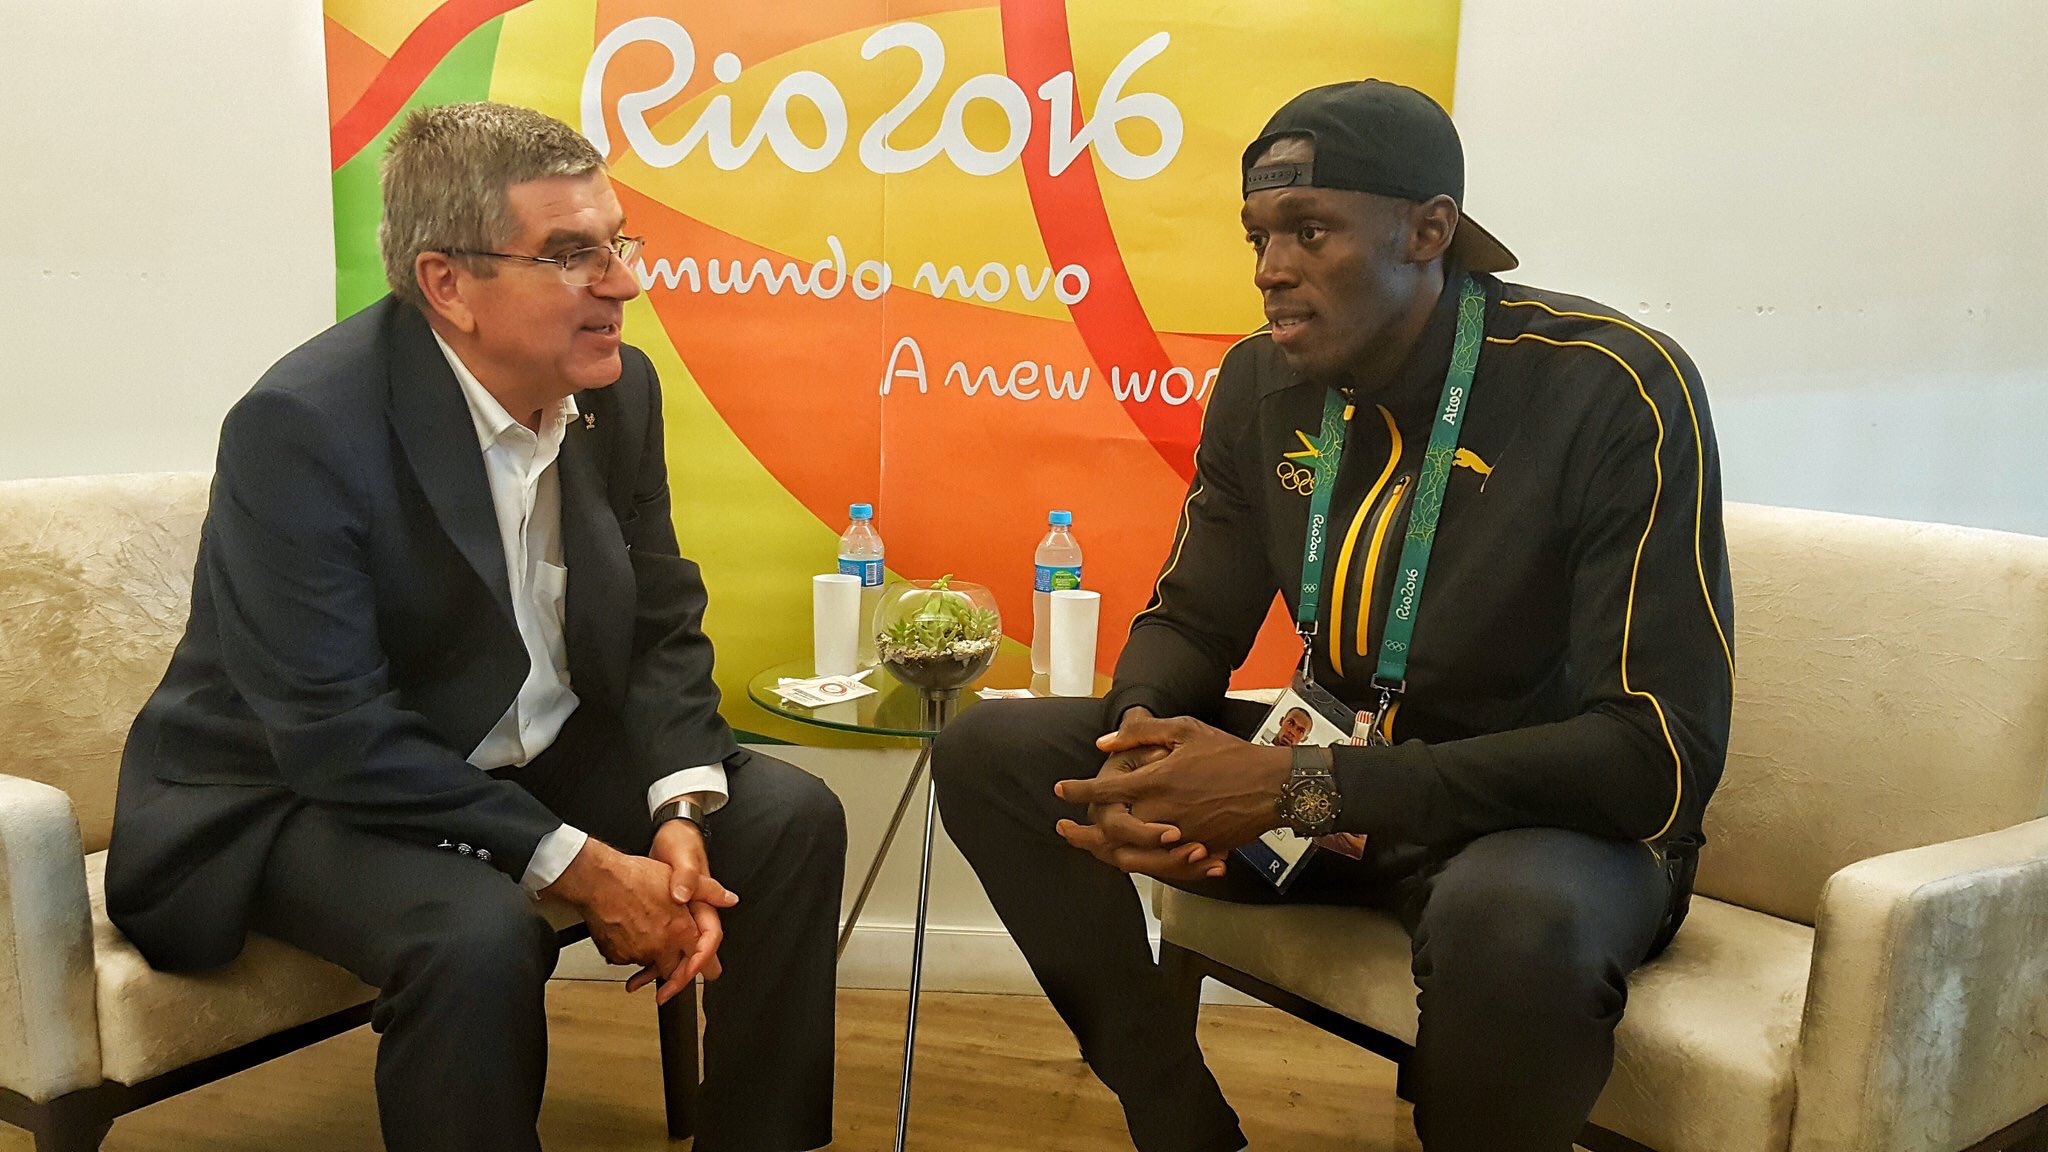 IOC President meets an Olympic legend @usainbolt https://t.co/W0SwzD3kWl